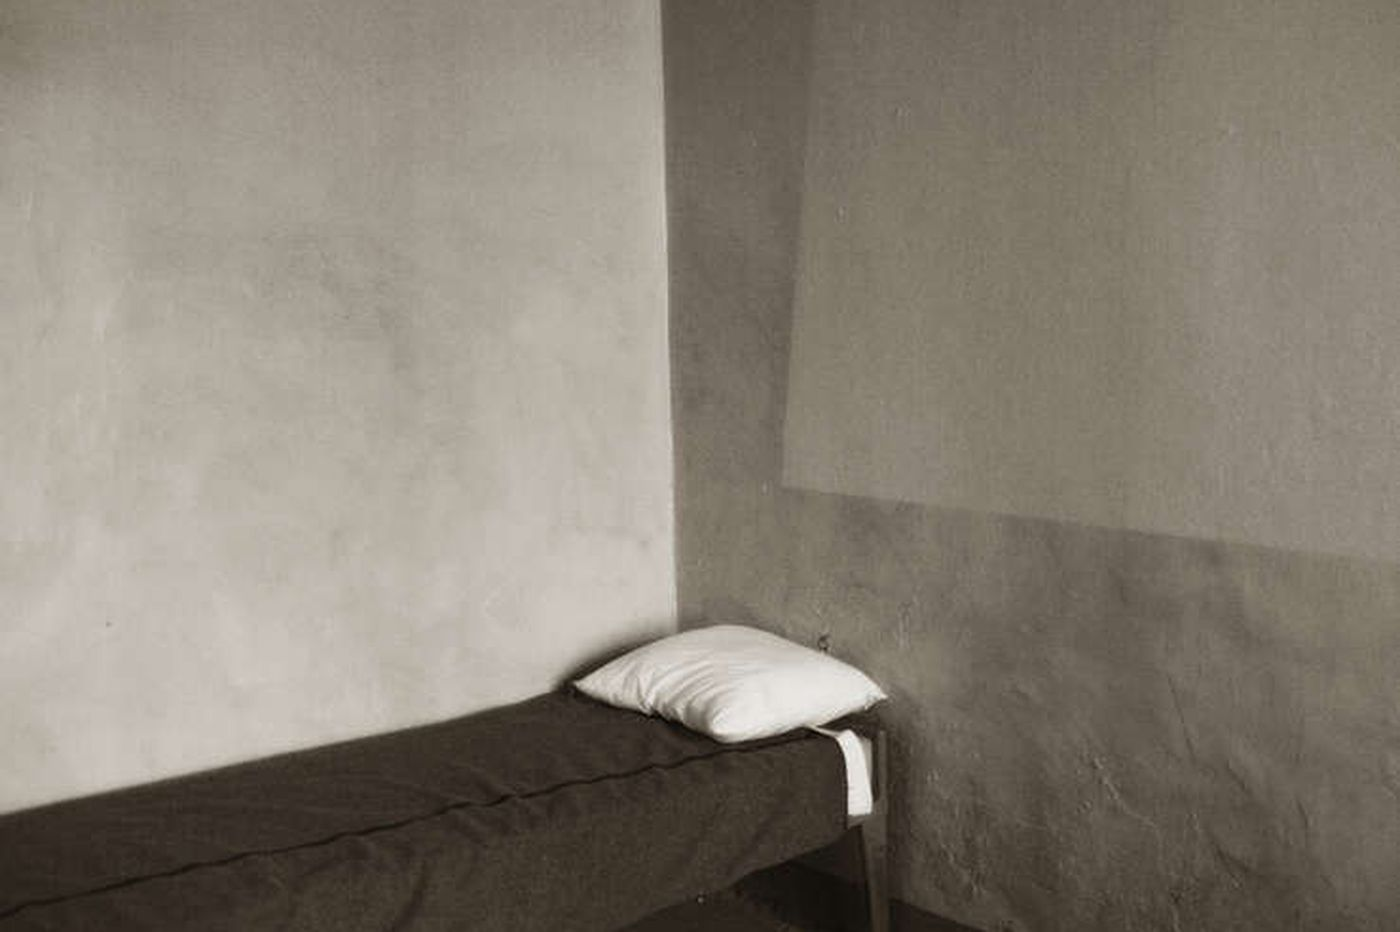 As debates over police reform rage, it's time to end solitary confinement | Opinion